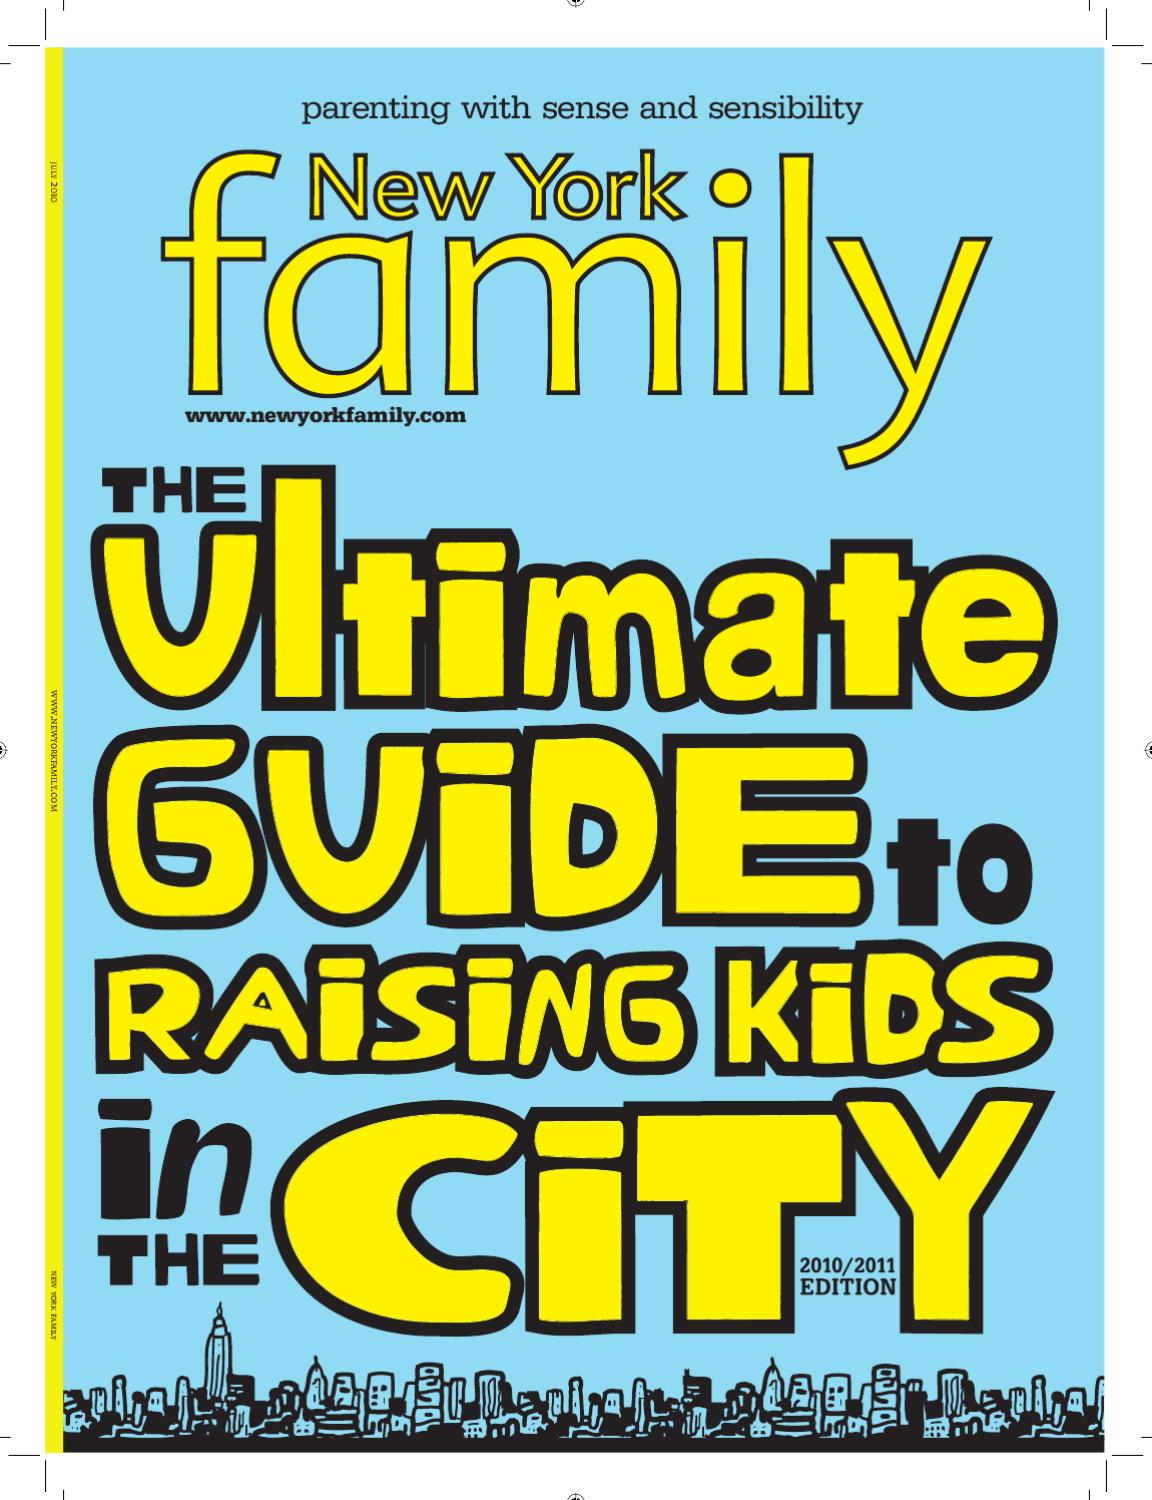 New York Family July 1, 2010 by New York Family - issuu